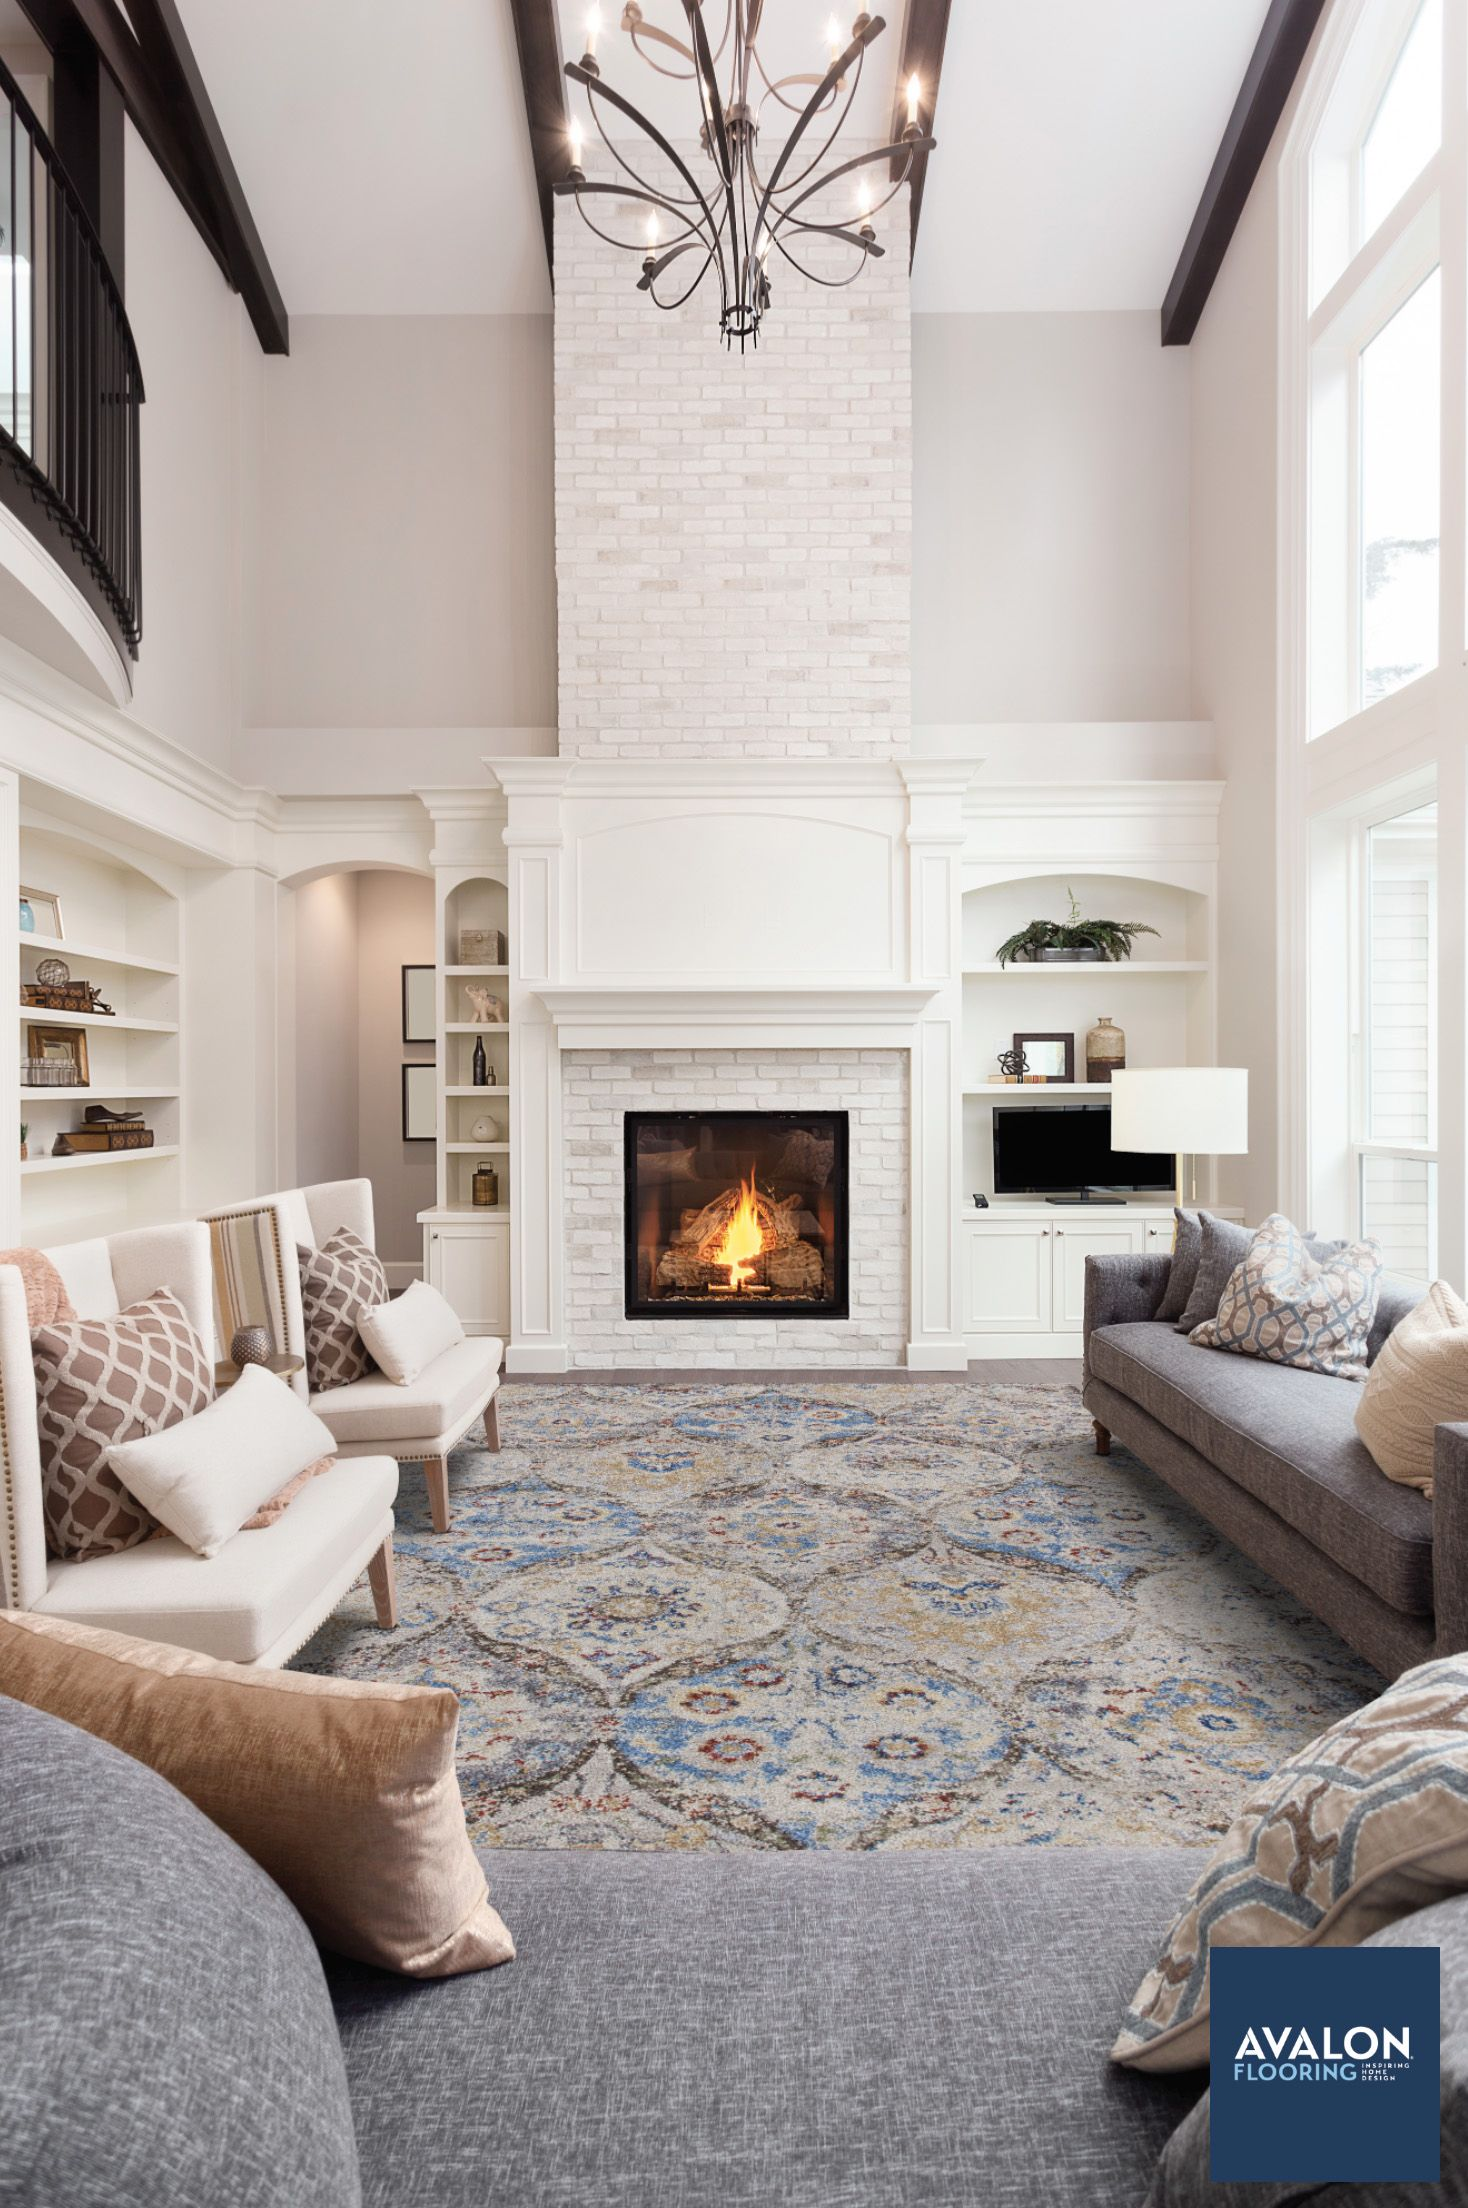 Area Rugs Can Make Your Home Warmer And More Inviting Especially